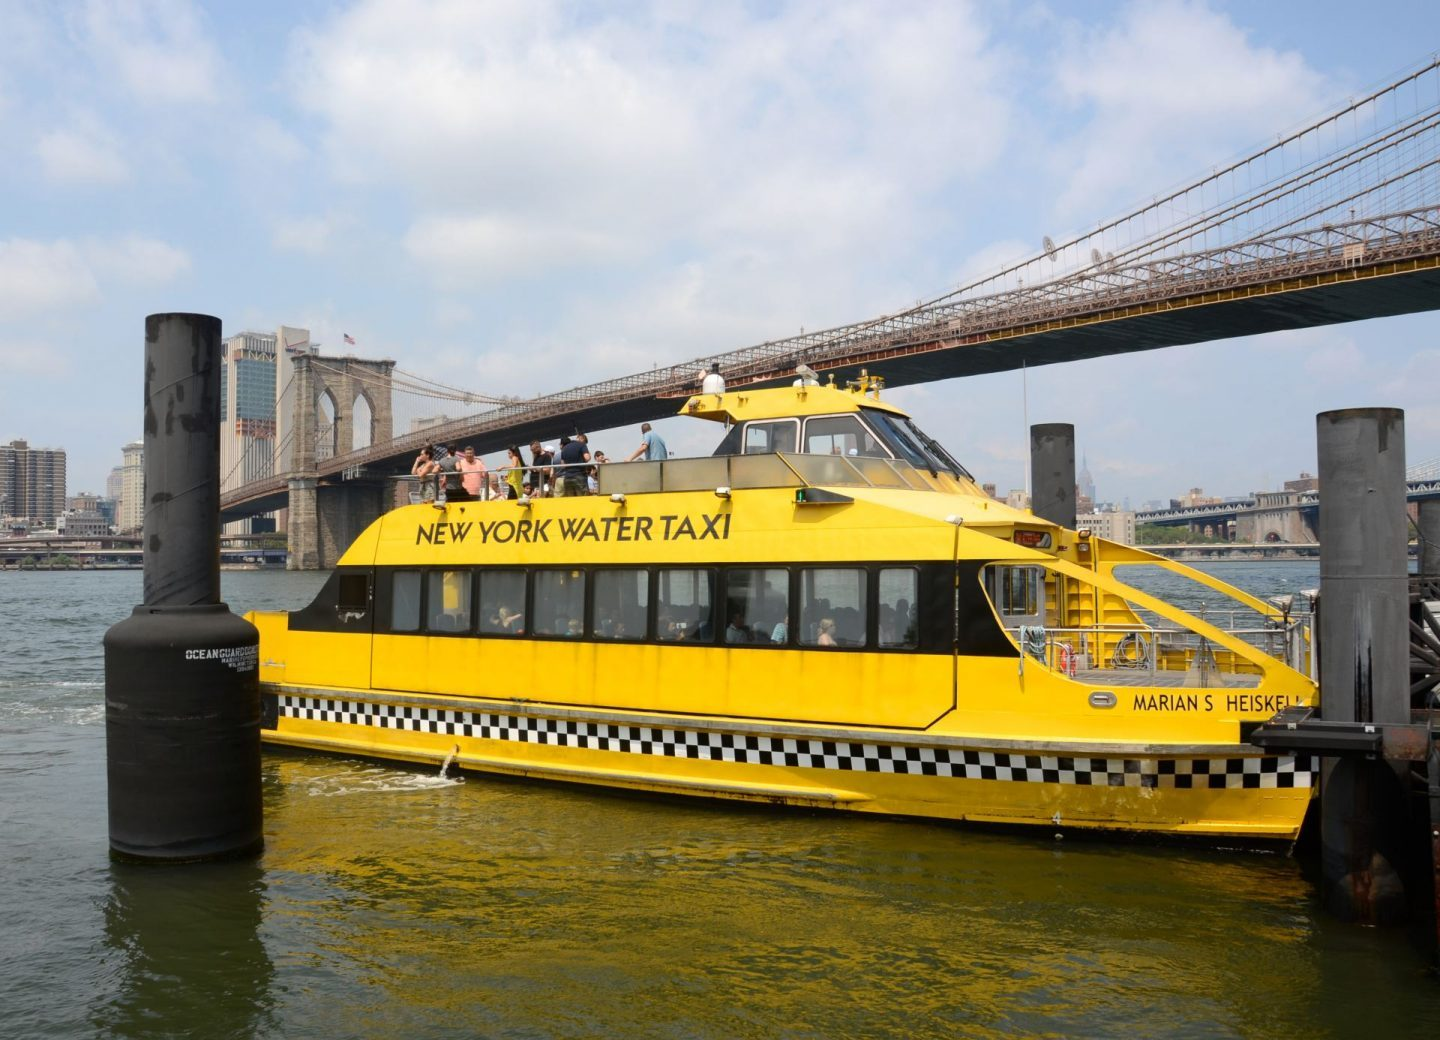 New York Water taxi next to the Brooklyn Bridge.